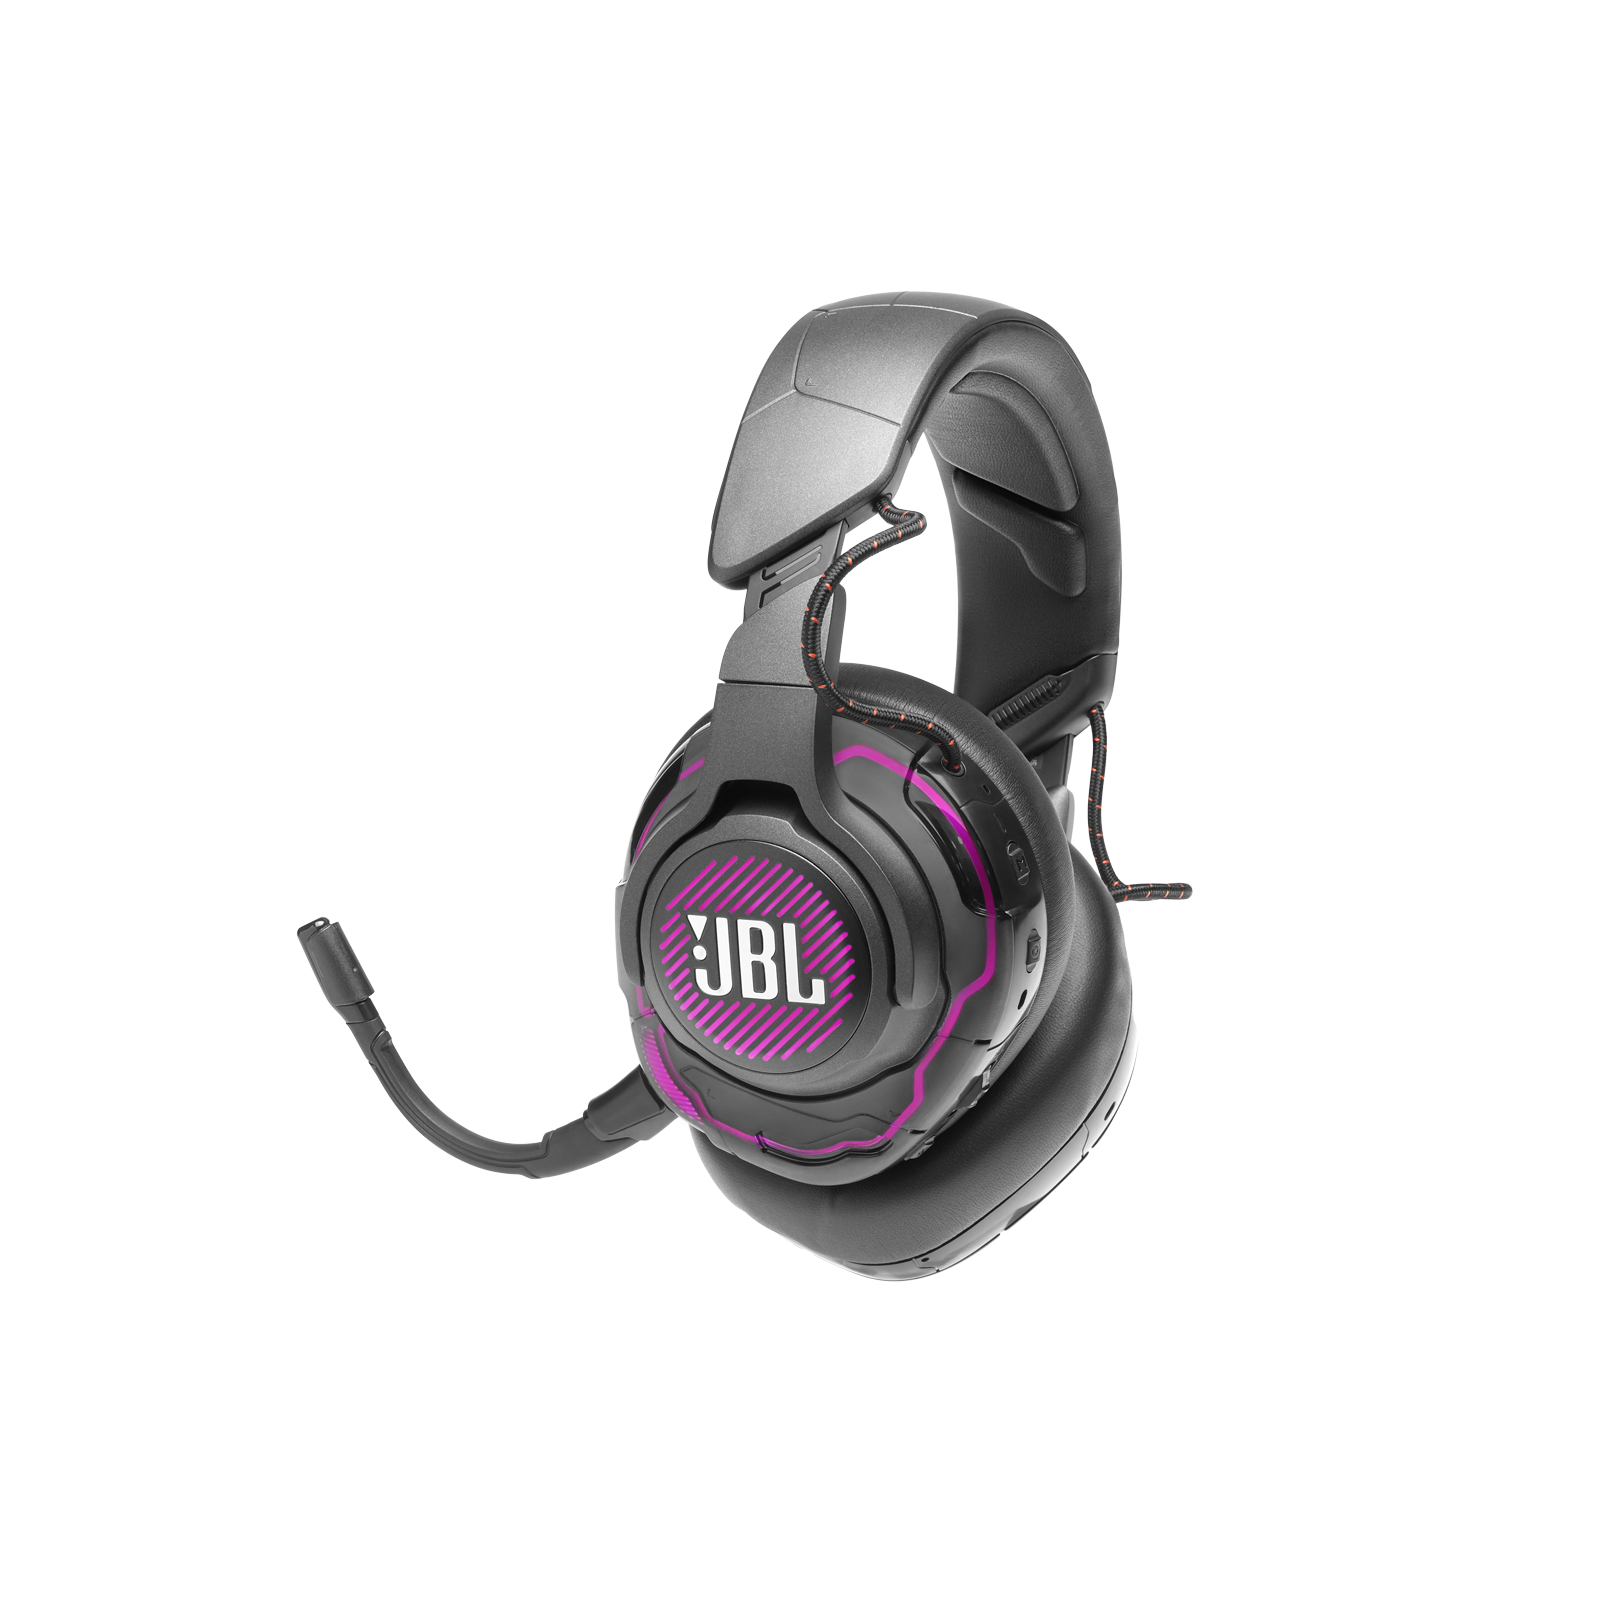 JBL Quantum ONE - Black - USB wired over-ear professional gaming headset with head-tracking enhanced JBL QuantumSPHERE 360 - Detailshot 3